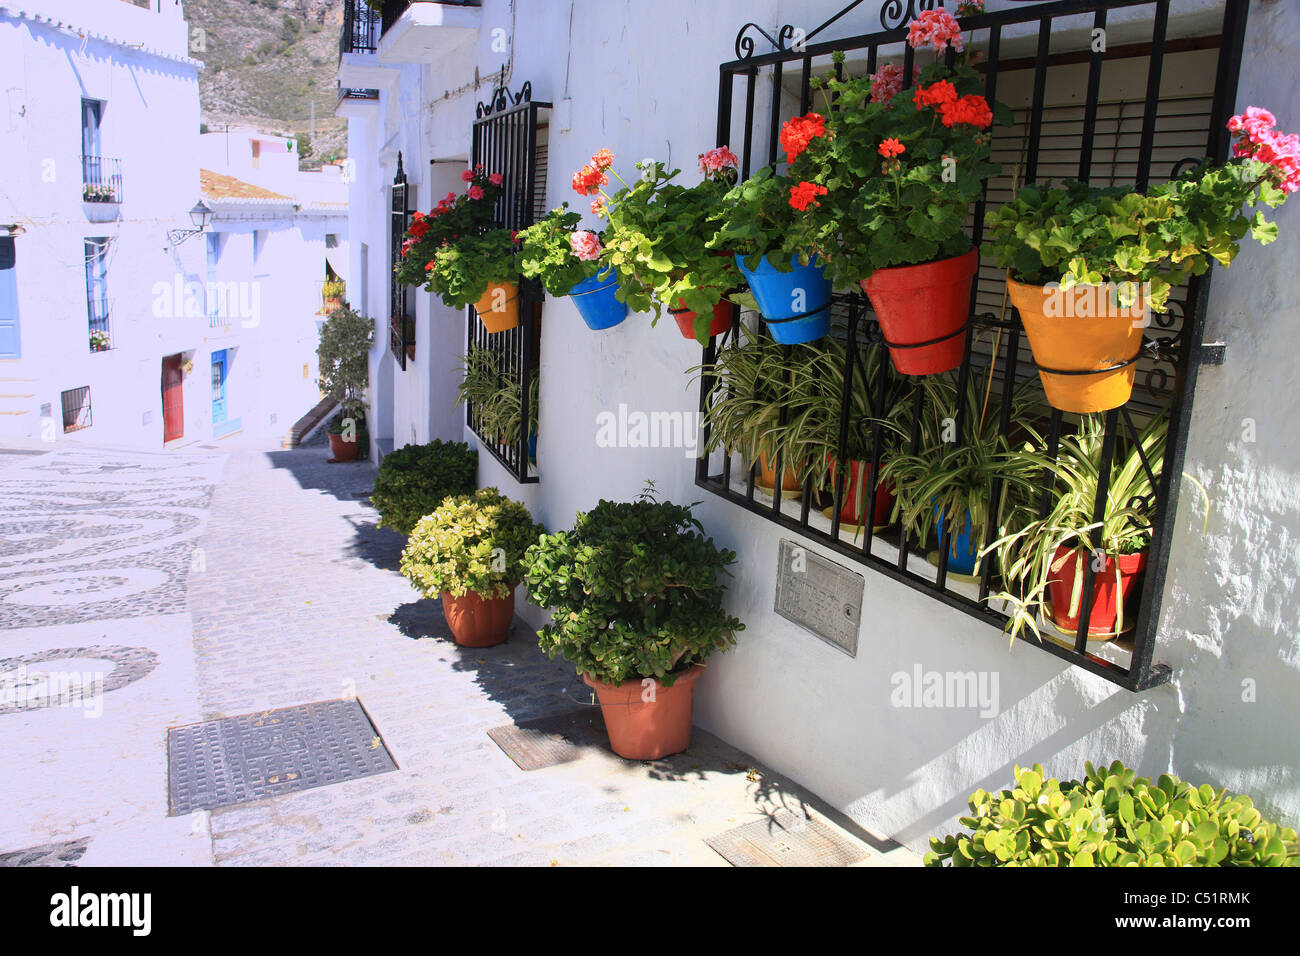 The quiet streets and pretty window boxes of picturesque Frigiliana in southern Spain - Stock Image